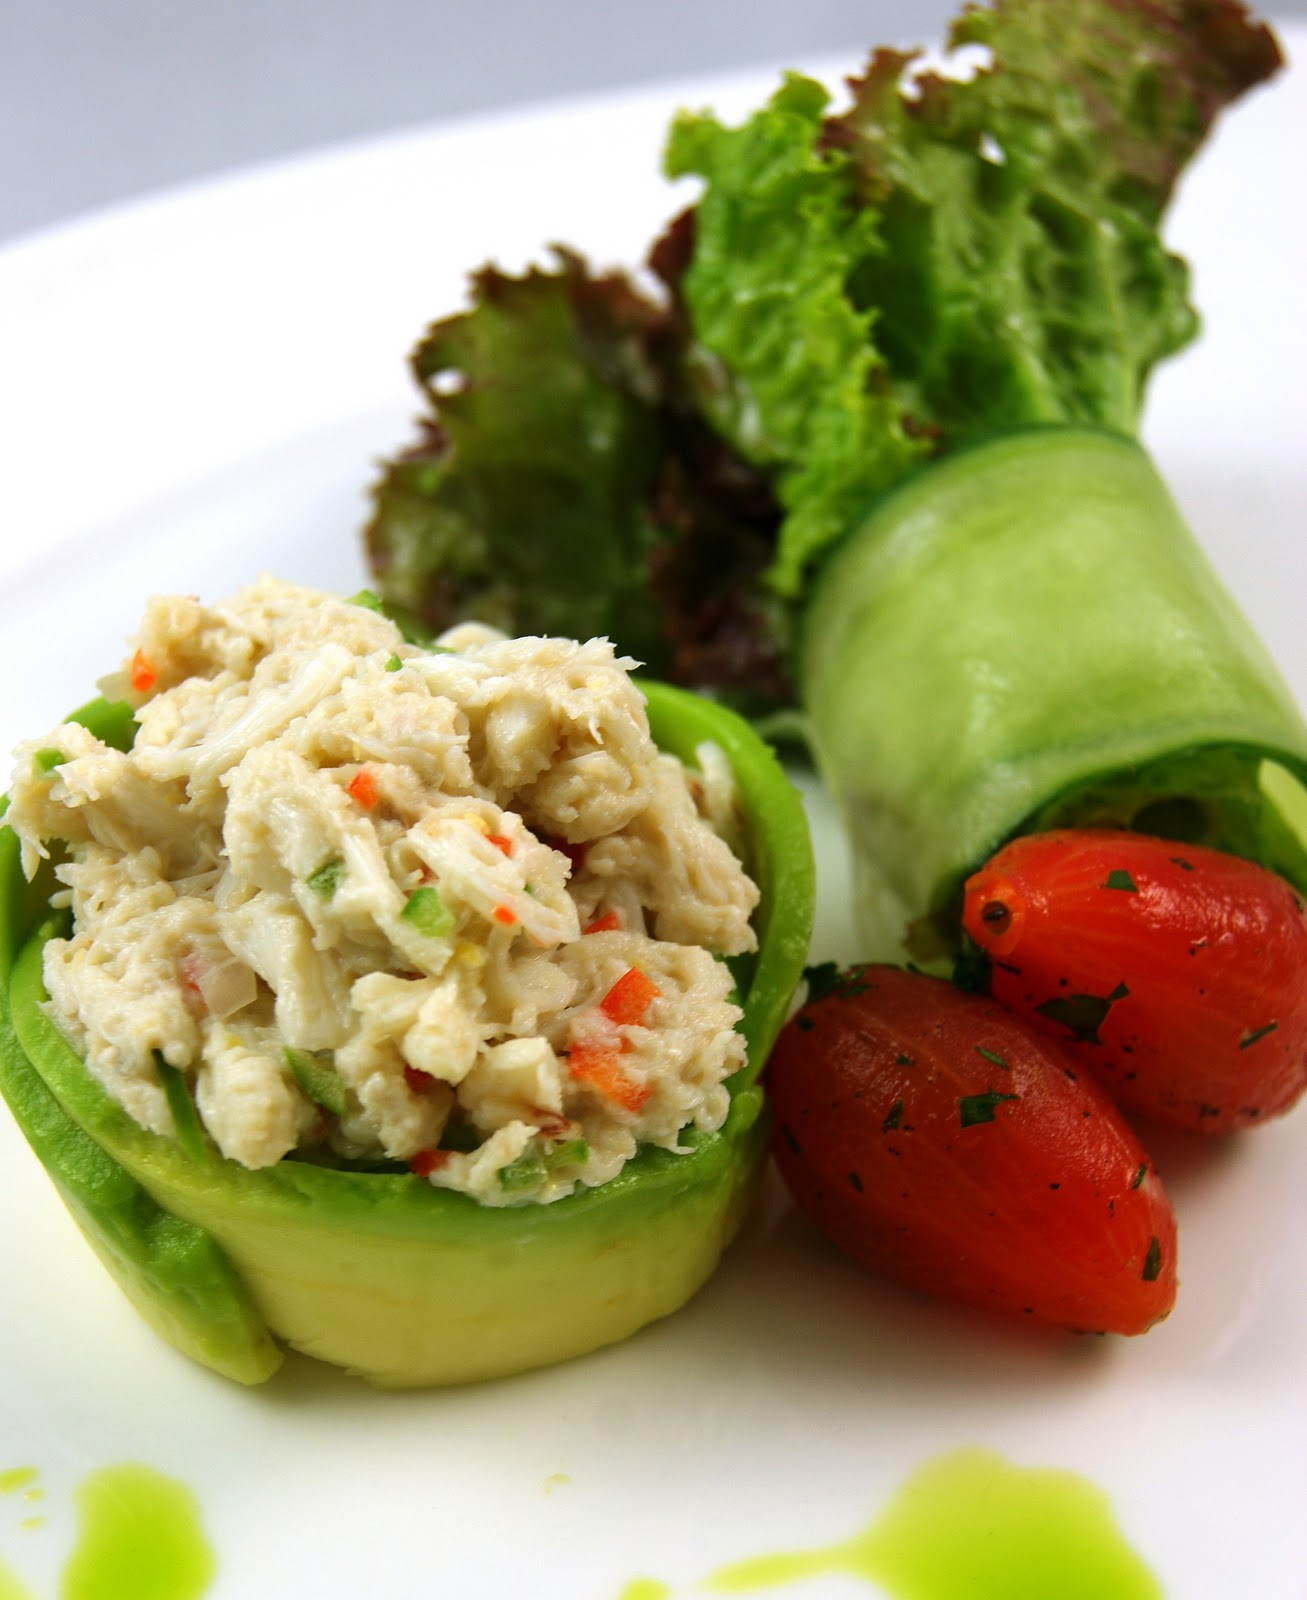 ... crab and avocado salad lime crab salad in avocado halves crab cakes